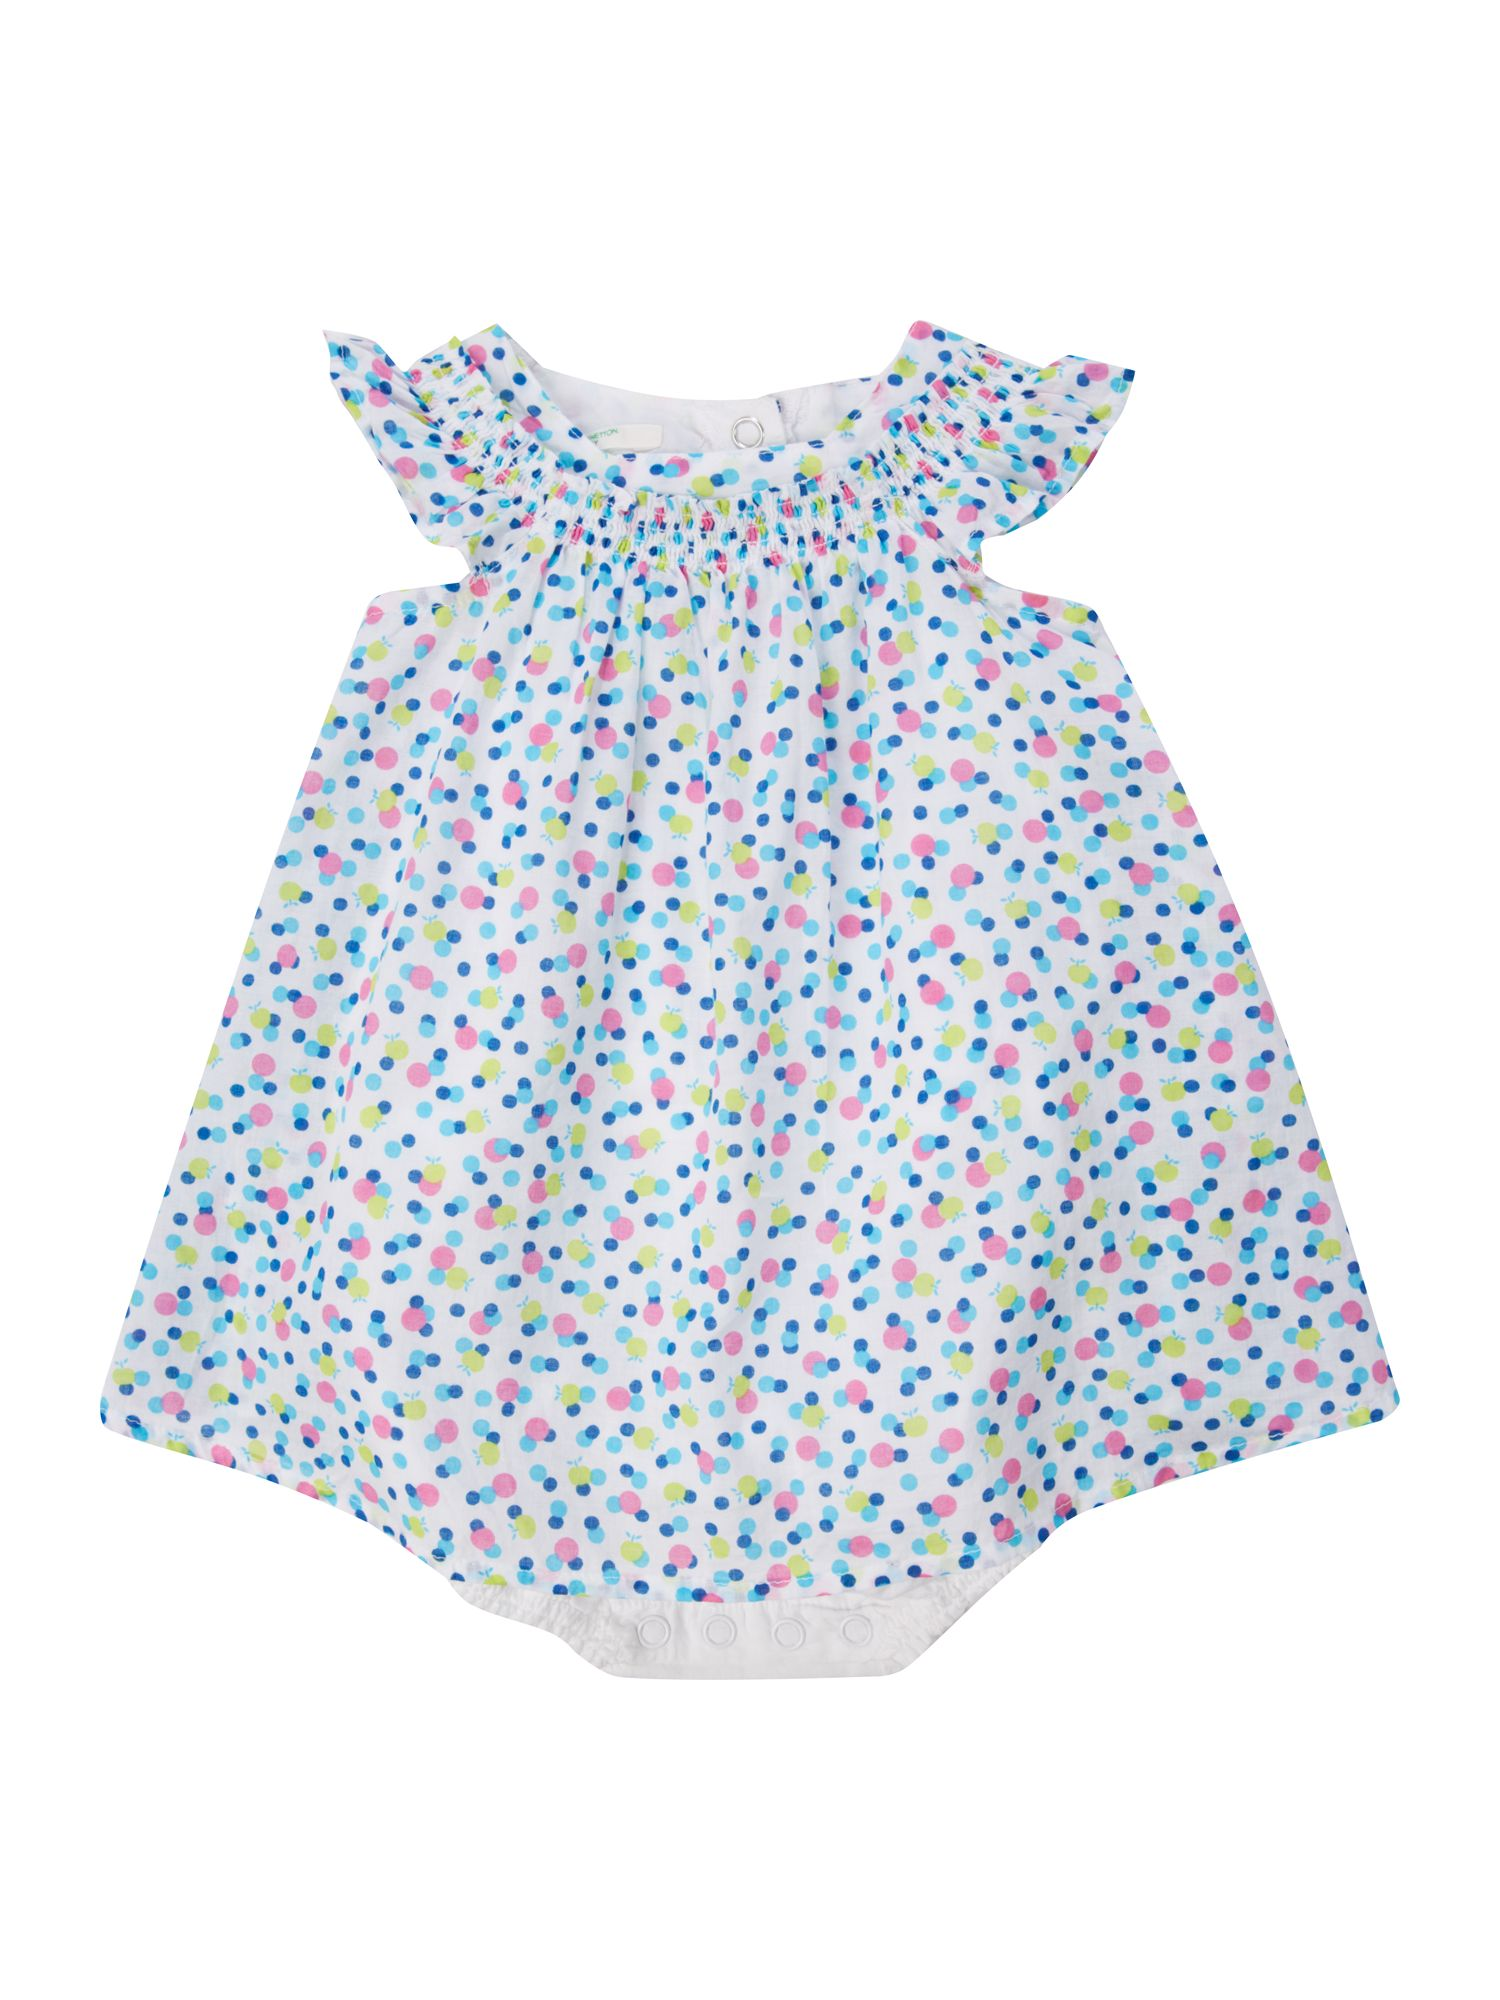 Girls spotty romper